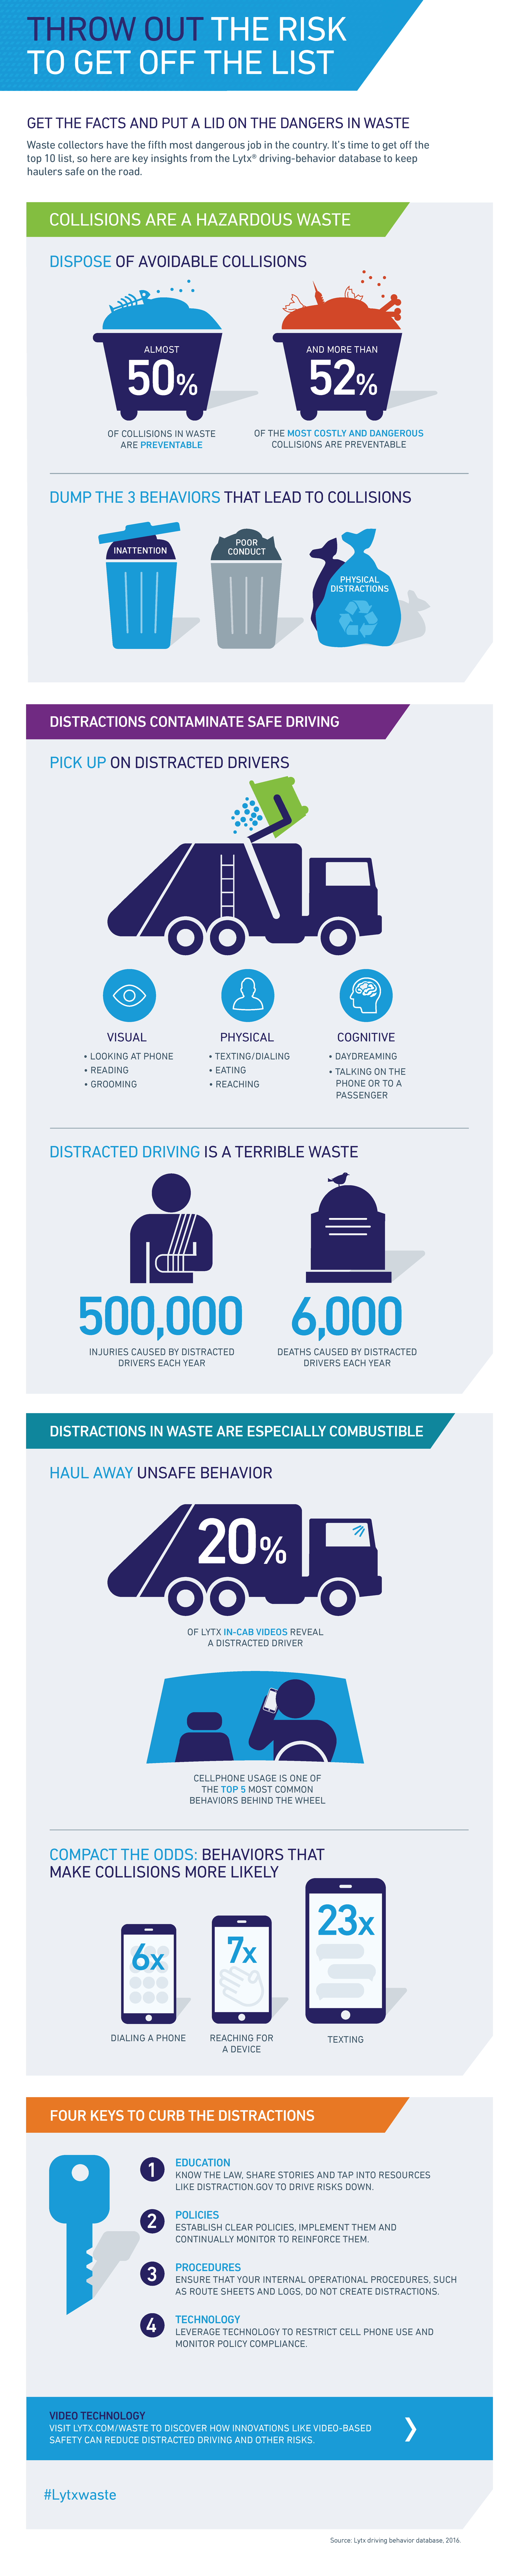 Distracted Driving in Waste